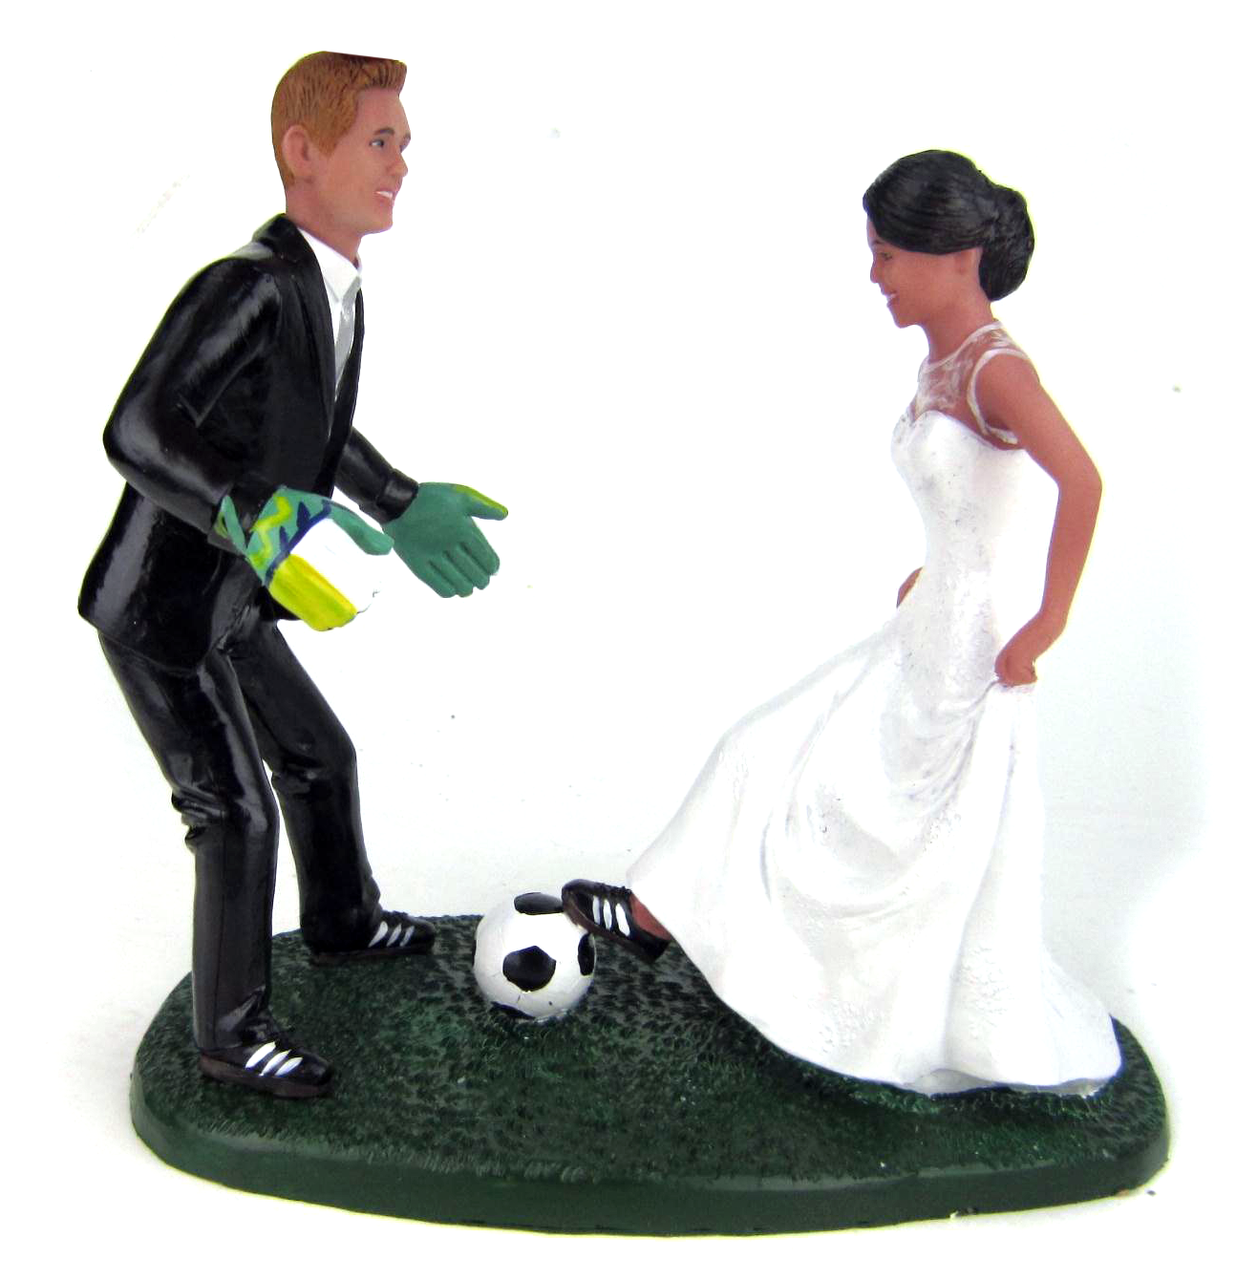 Soccer Wedding Cake Toppers - Custom, Personalized